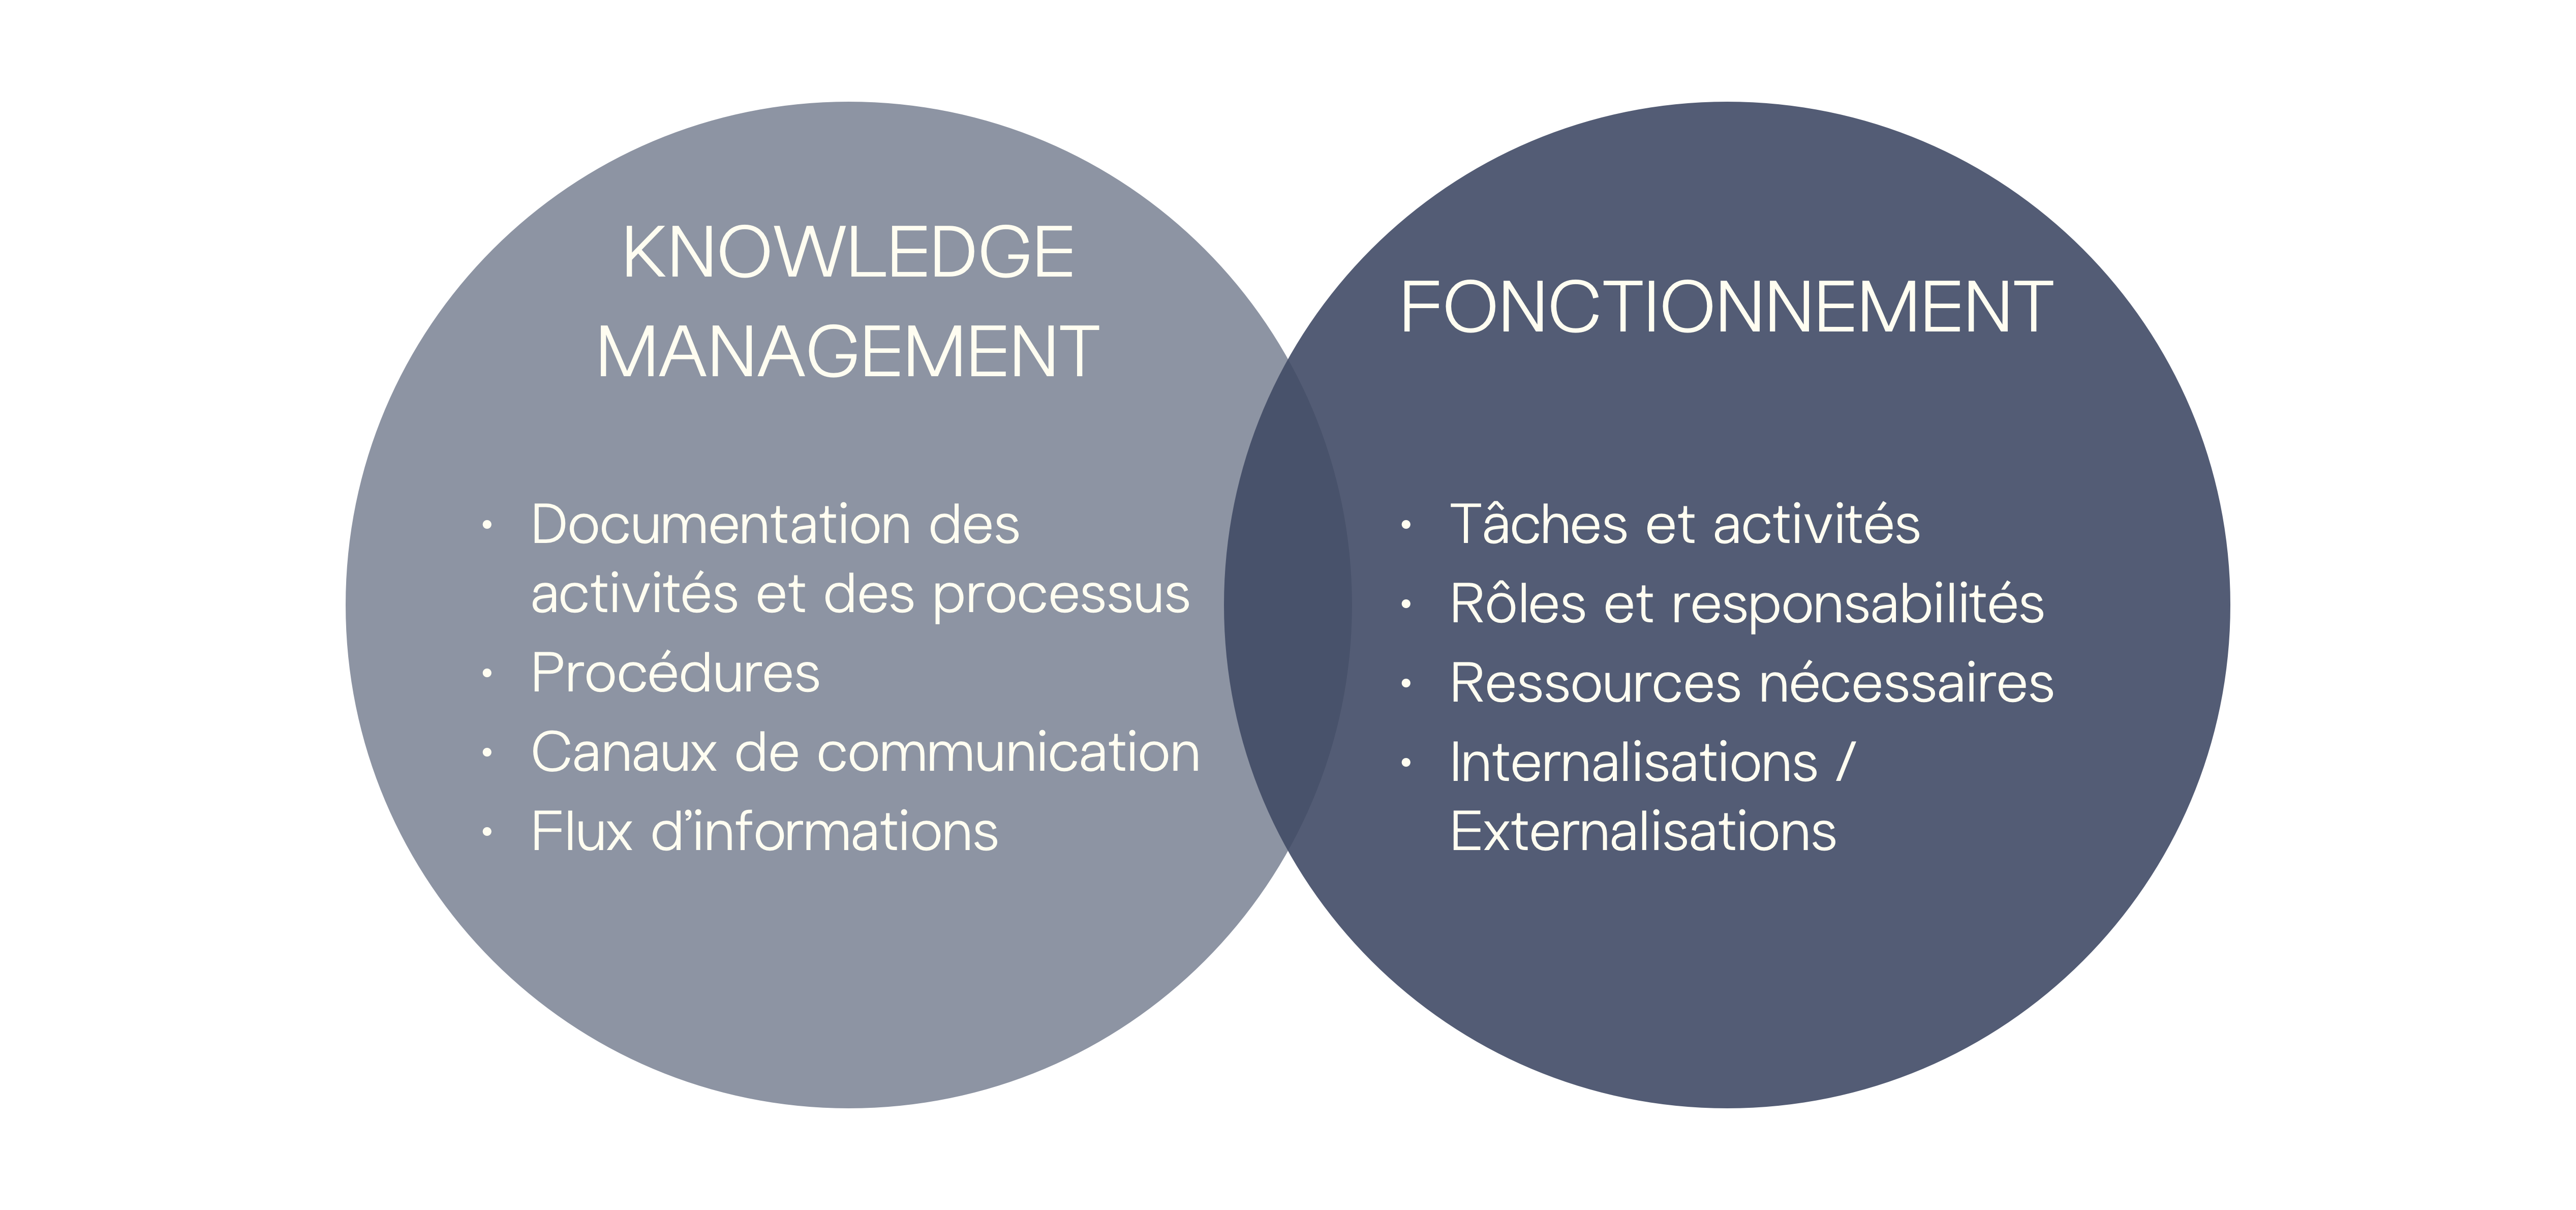 Analyse du Knowledge Management et du Fonctionnement